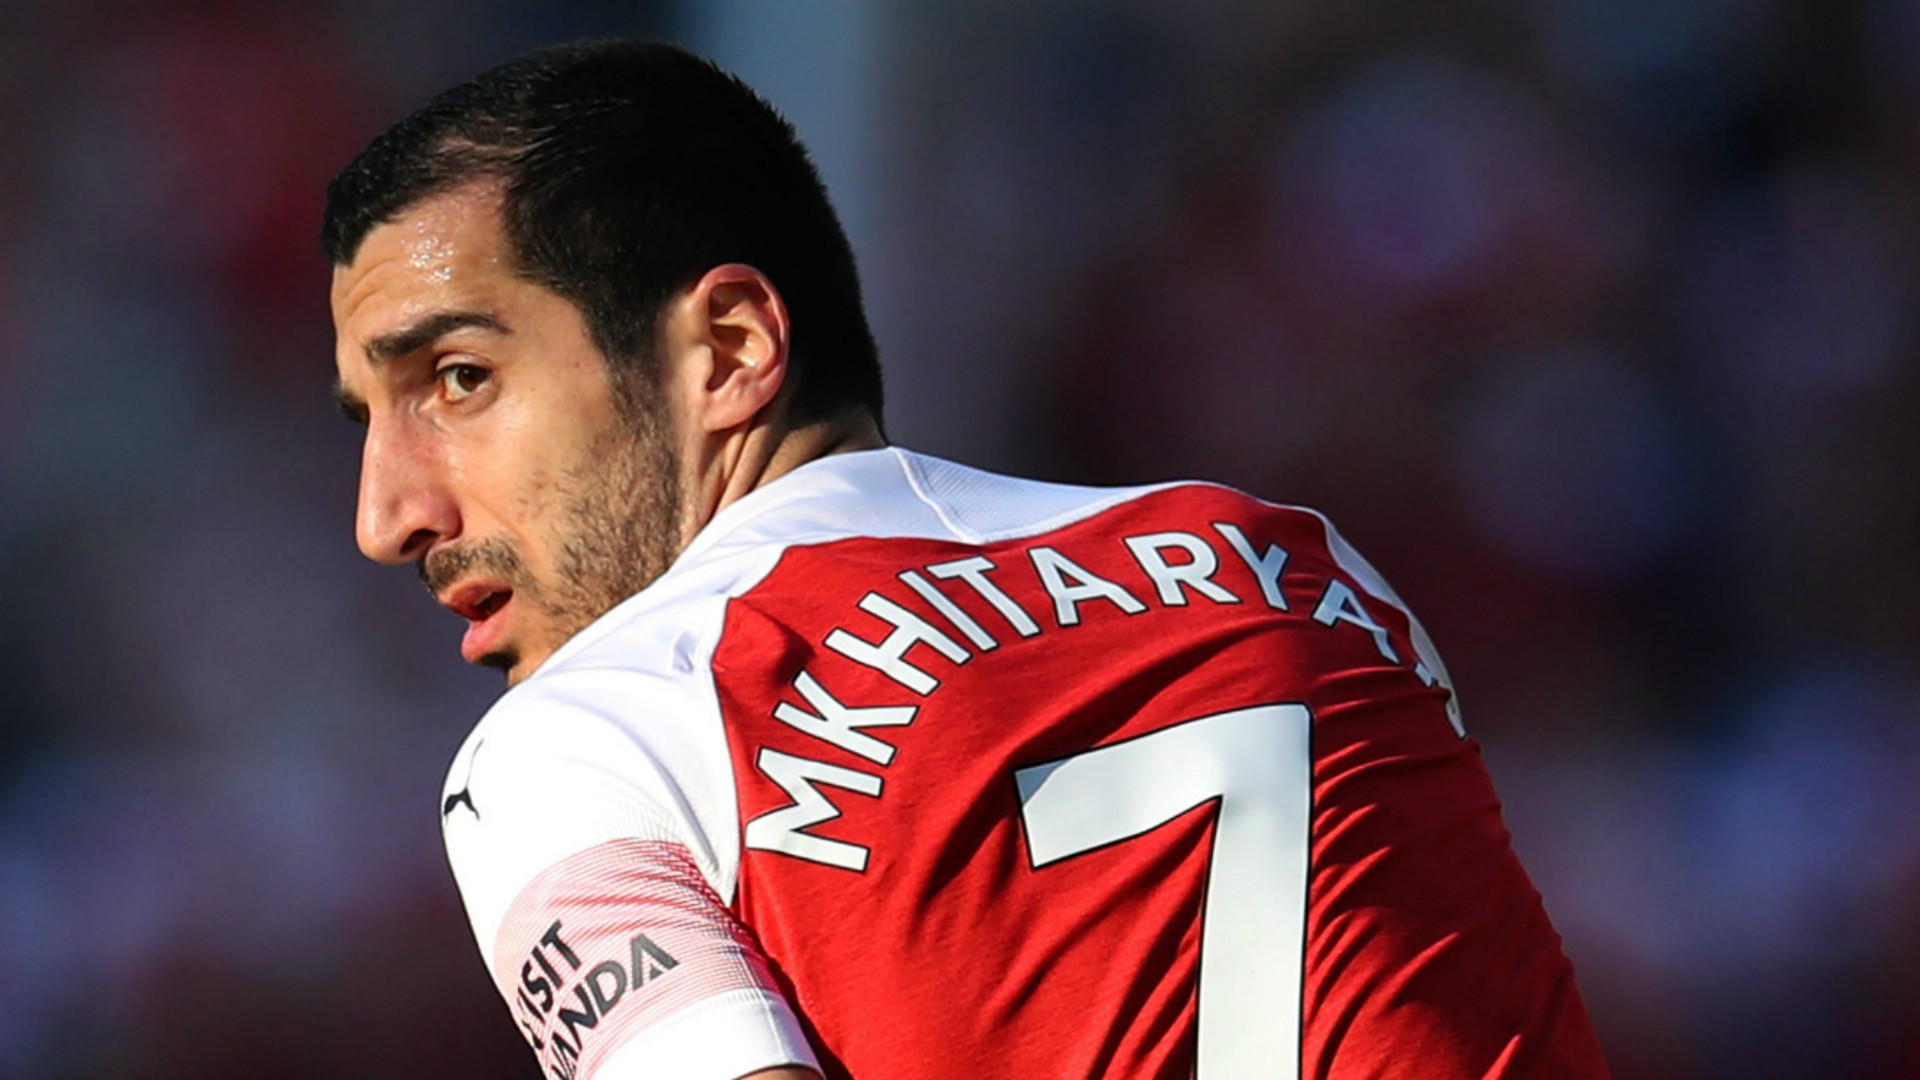 'We want to win it for Mkhitaryan' - Mustafi frustrated over Arsenal team-mate's Europa League final absence